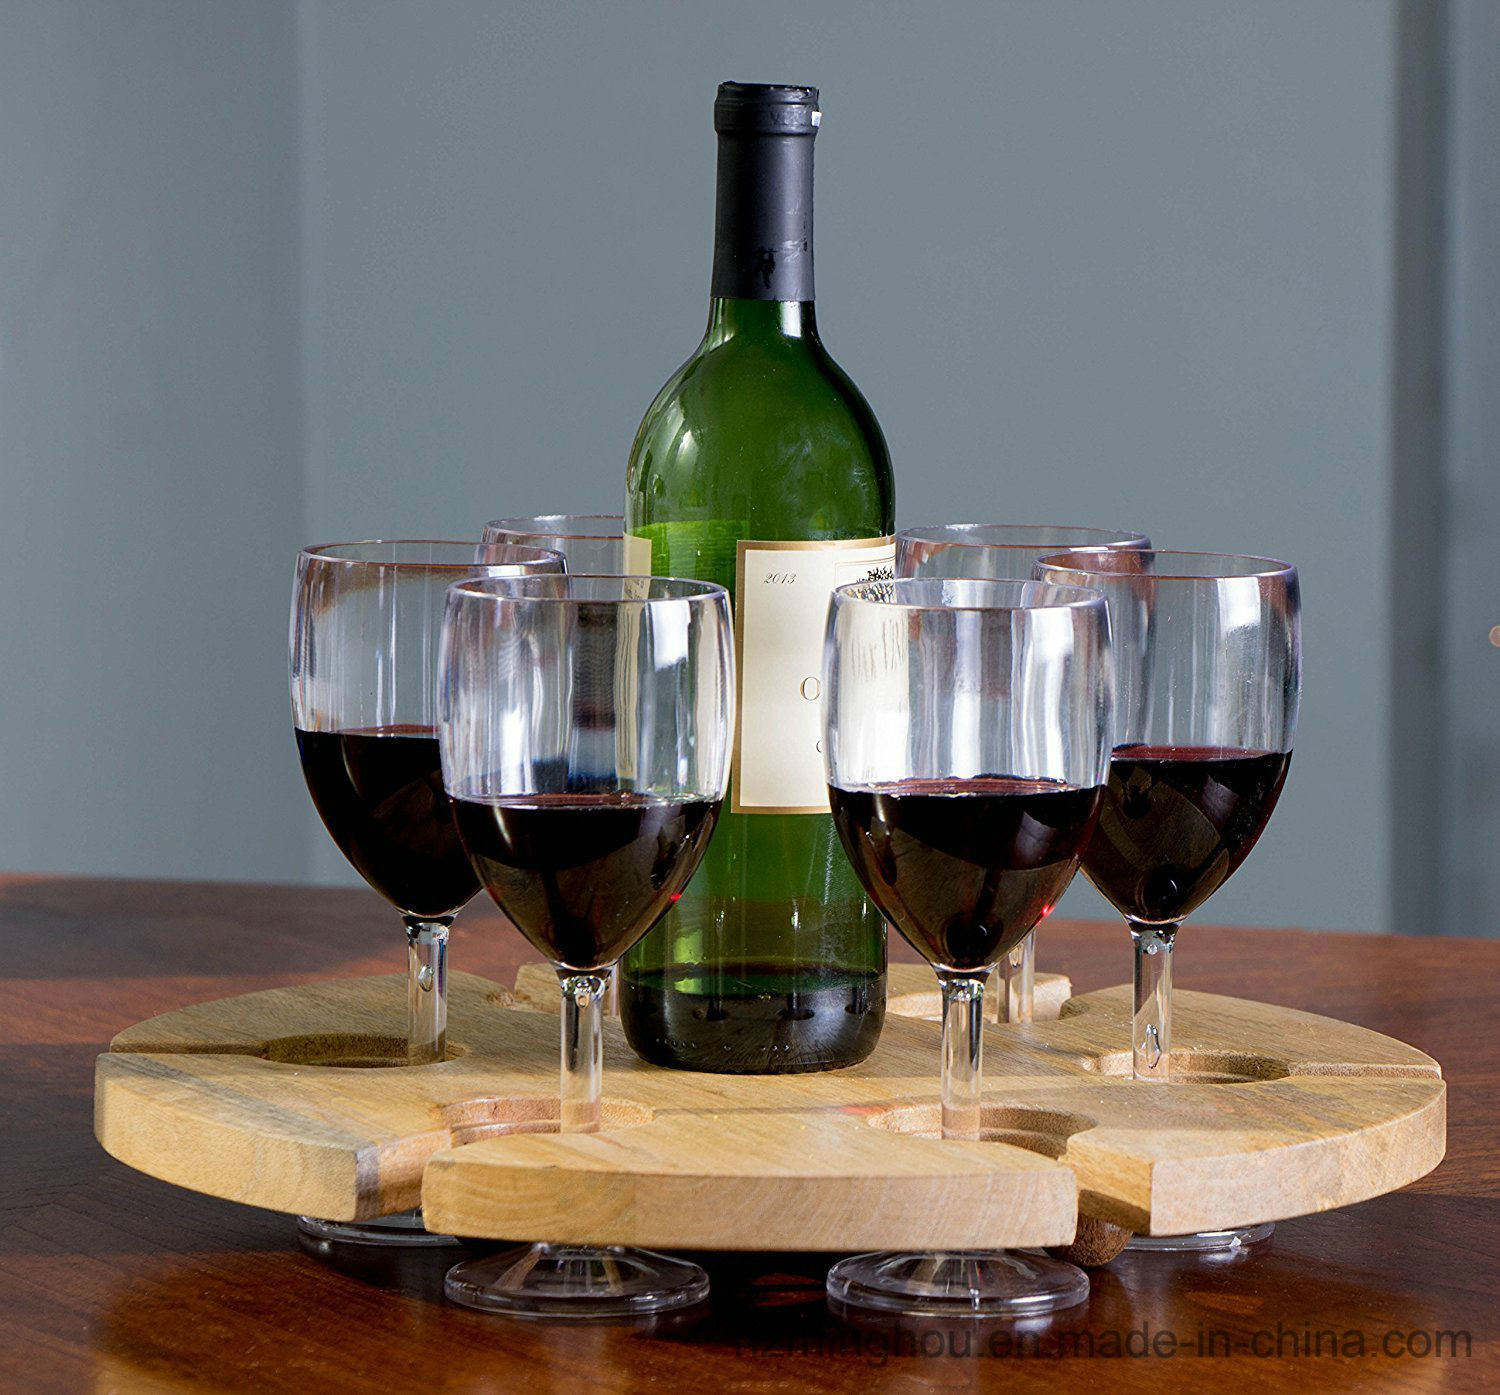 Tabletop Wine Glass Rack Marcuscable Com